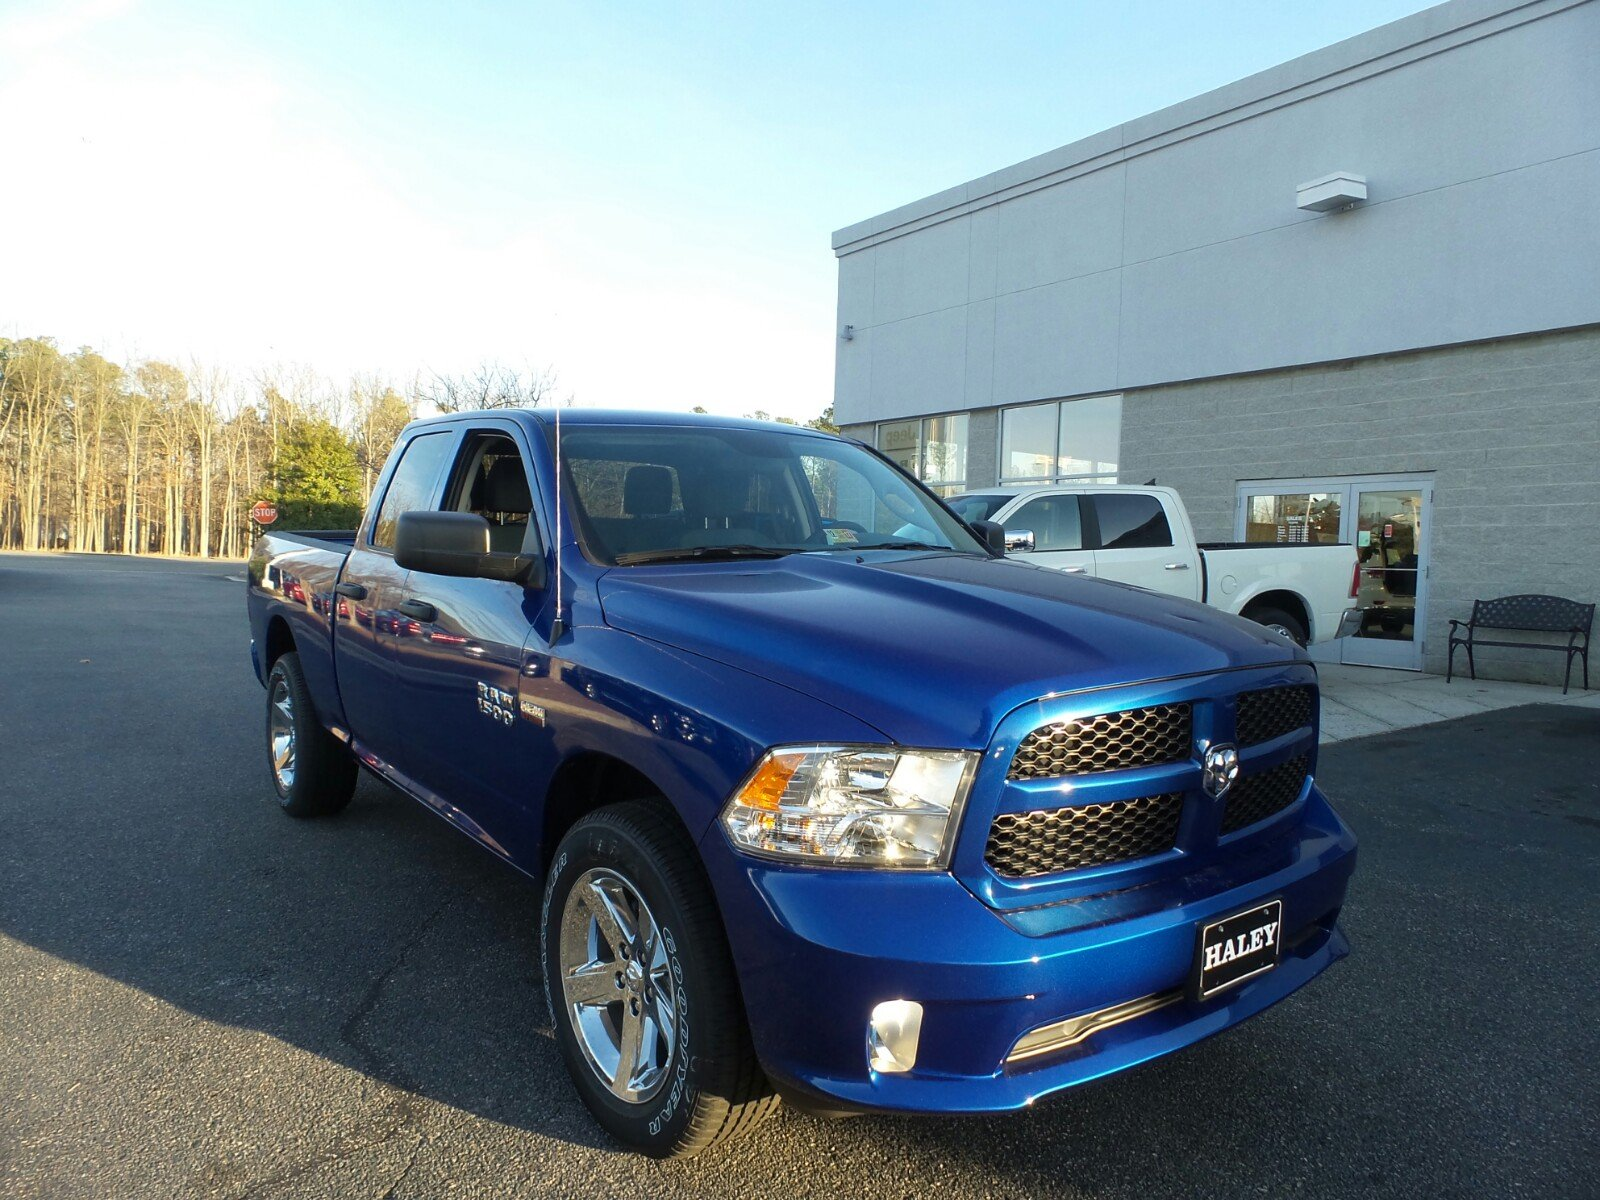 new 2017 ram 1500 express quad cab in richmond s618747 haley chrysler dodge jeep ram. Black Bedroom Furniture Sets. Home Design Ideas